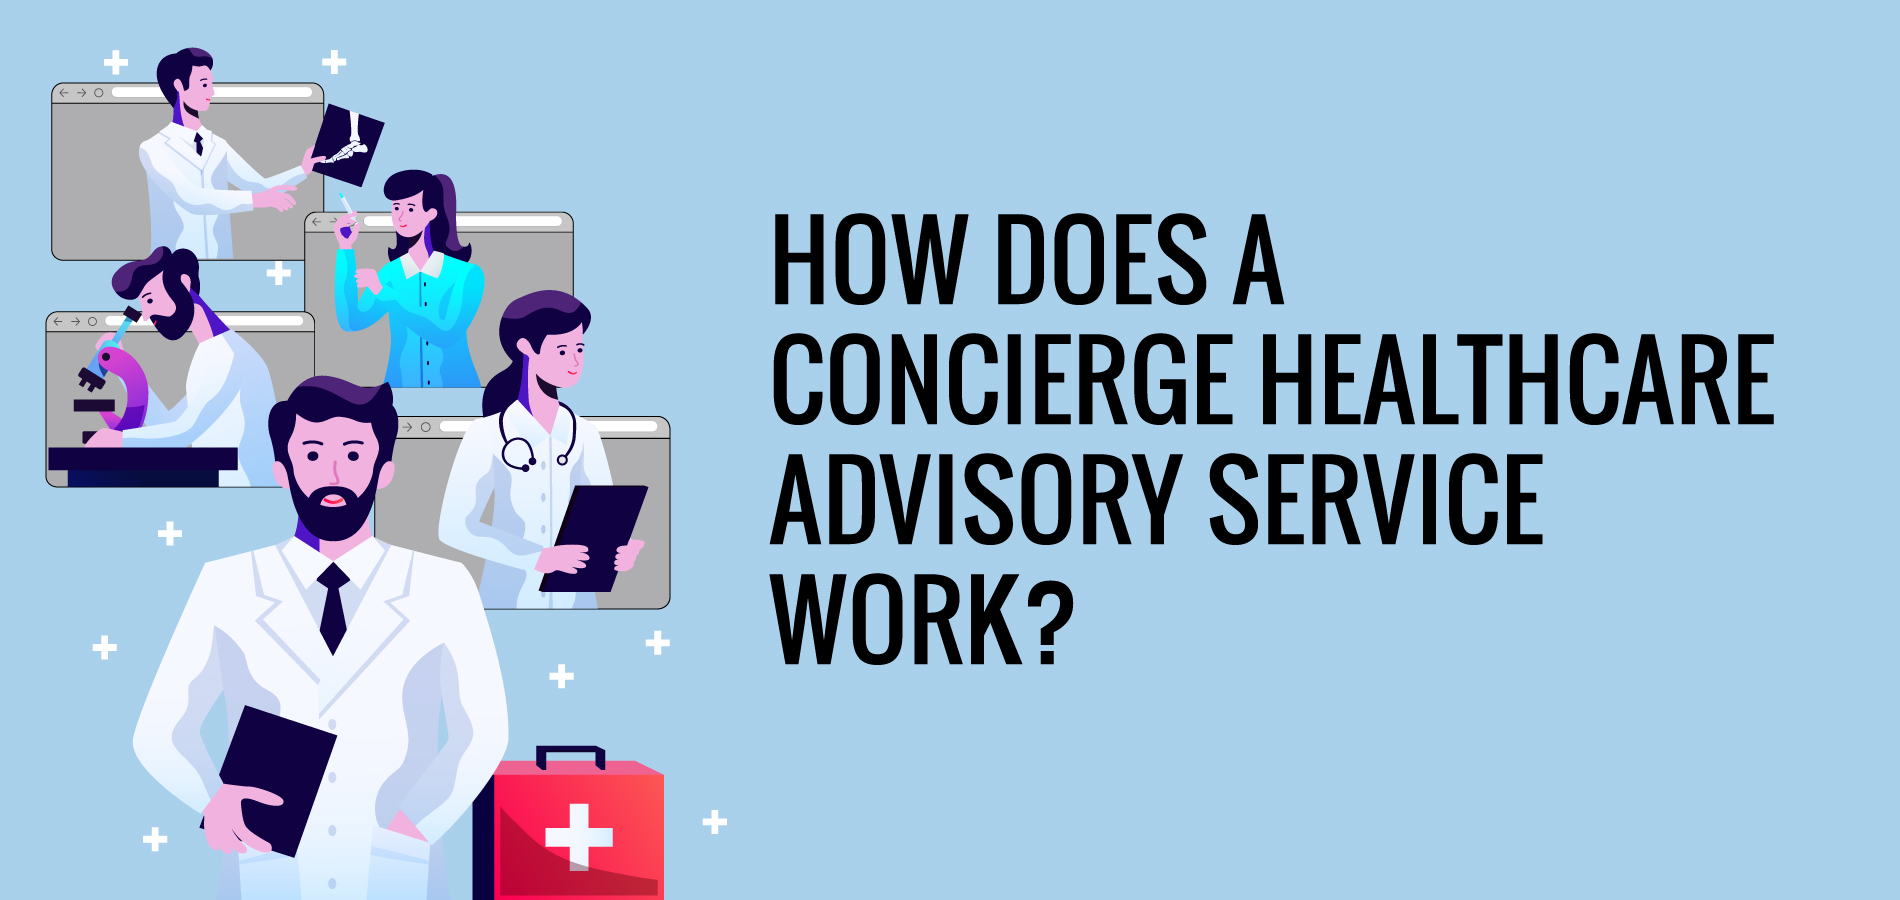 How does a concierge healthcare advisory service work